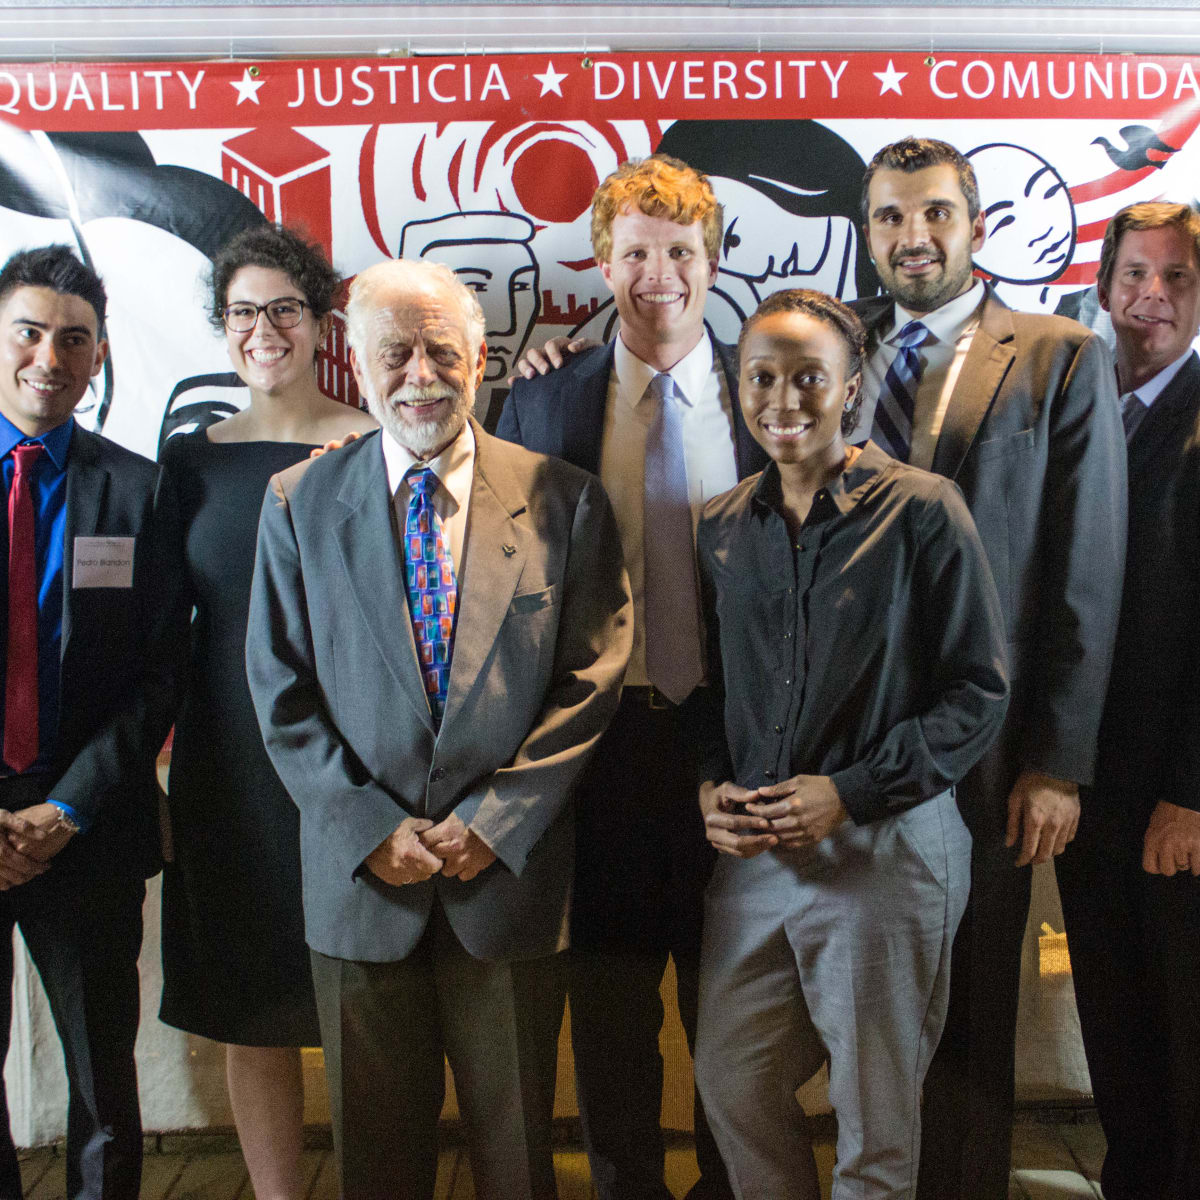 Texas Civil Rights Project fundraiser Pedro Blandon,   Wallis Nader,                 Jim Harrington,                Joe Kennedy III                Porscha Brown,  Amin Alehashem , Kyle Wright